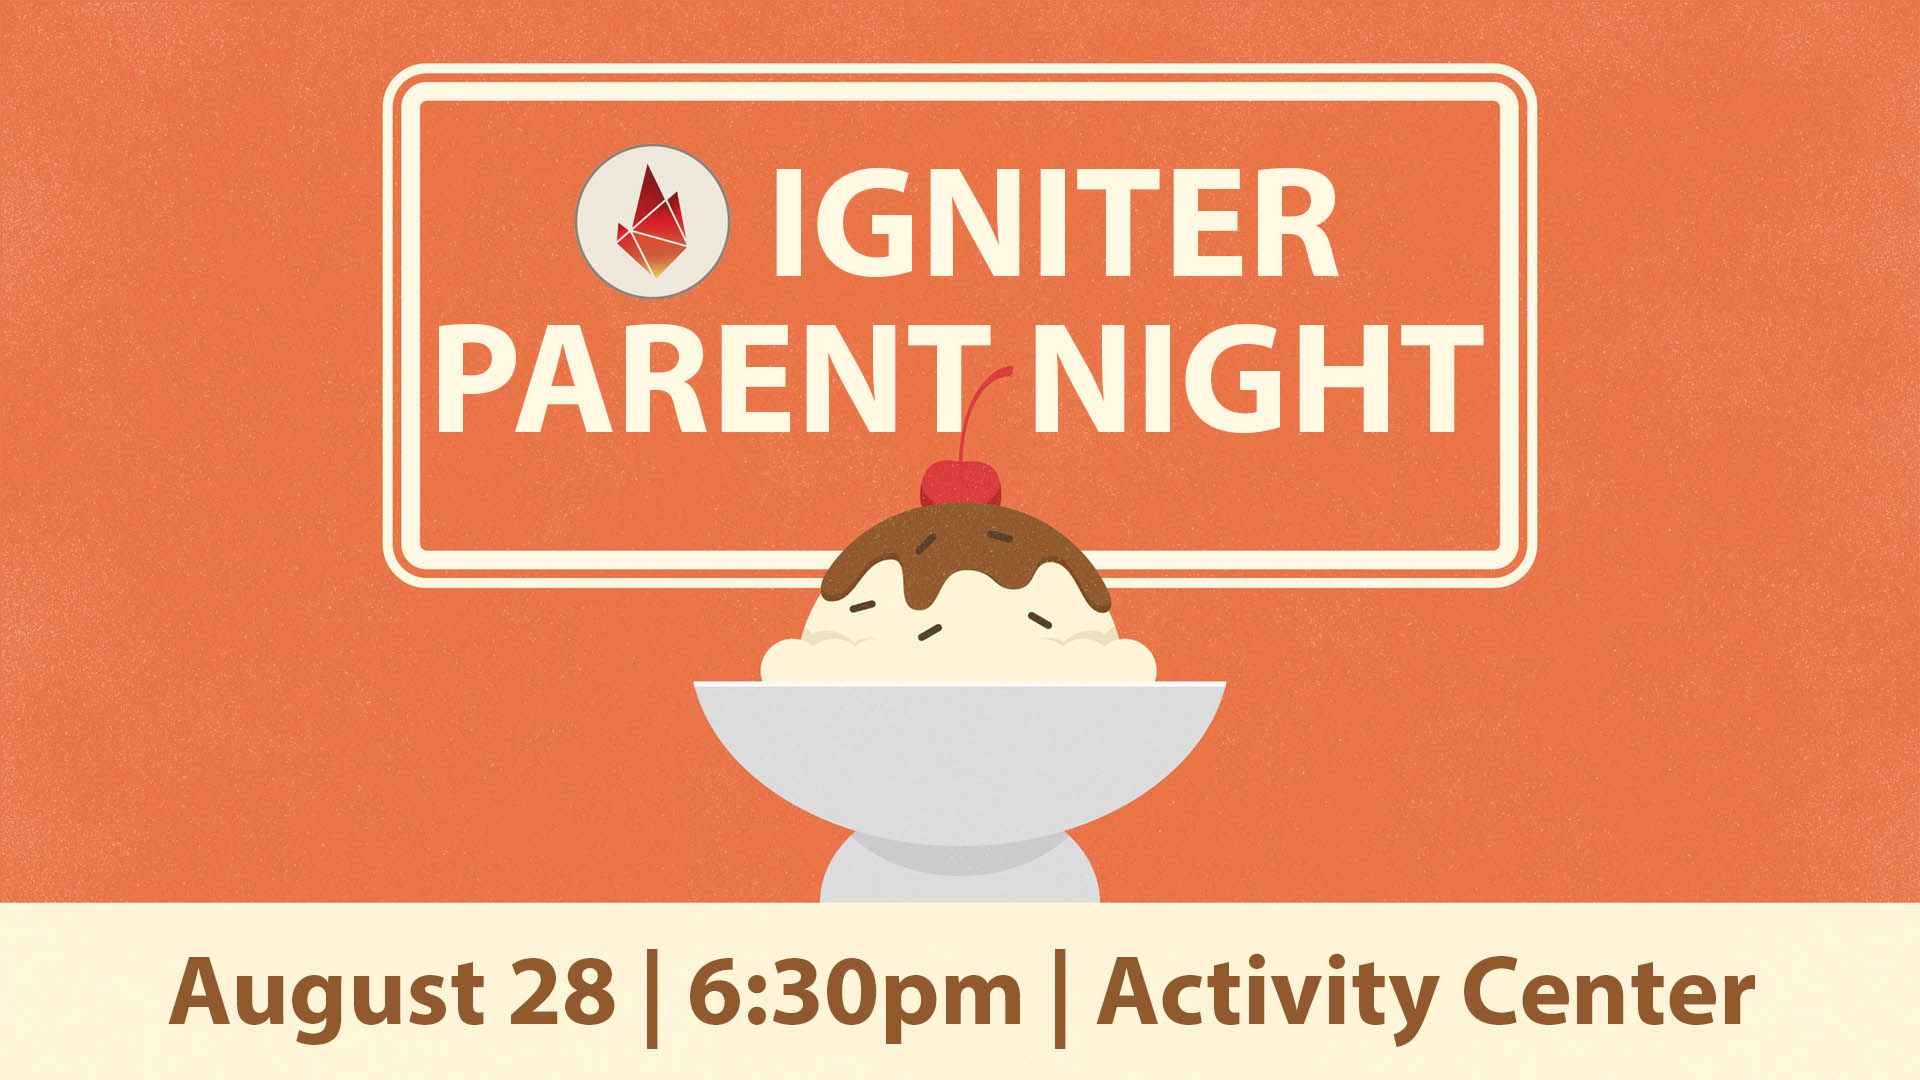 Igniter Parent Night.jpg